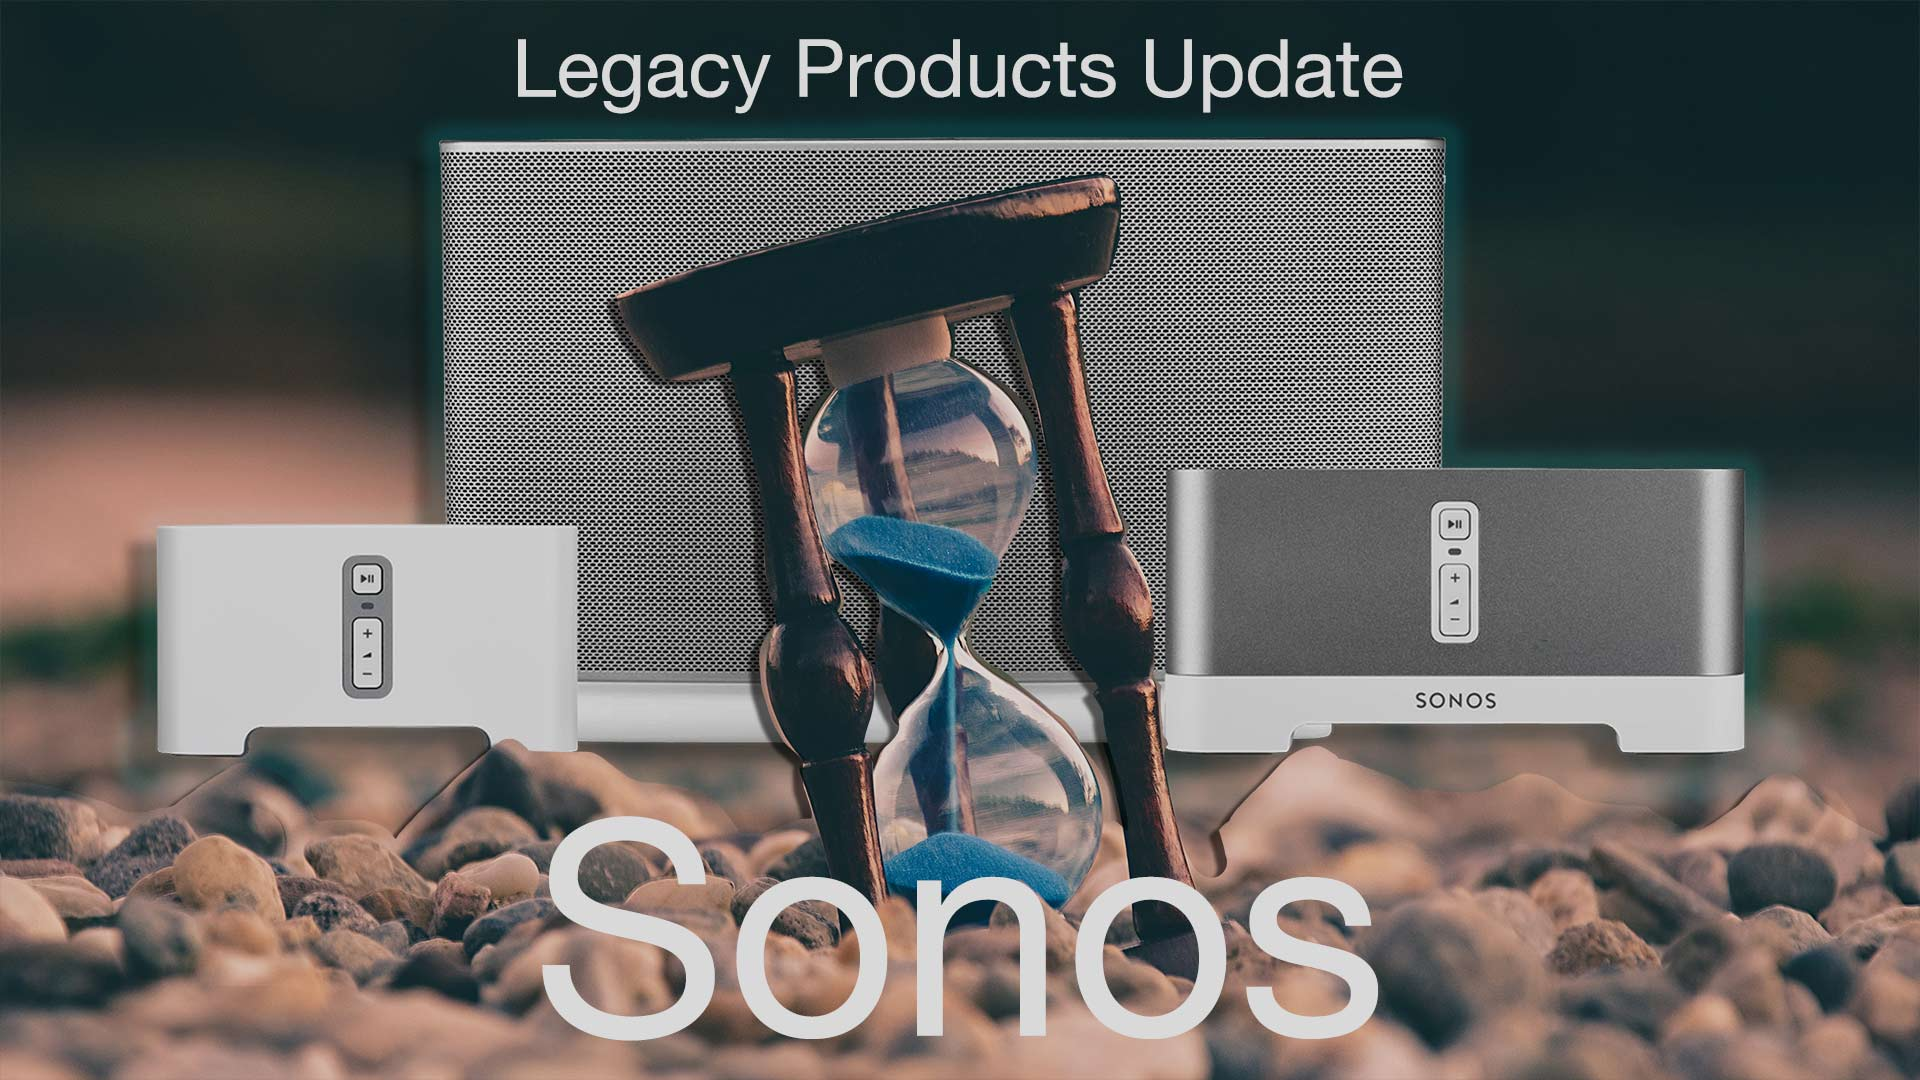 Sonos End Support For Legacy Products   Unilet Sound & Vision